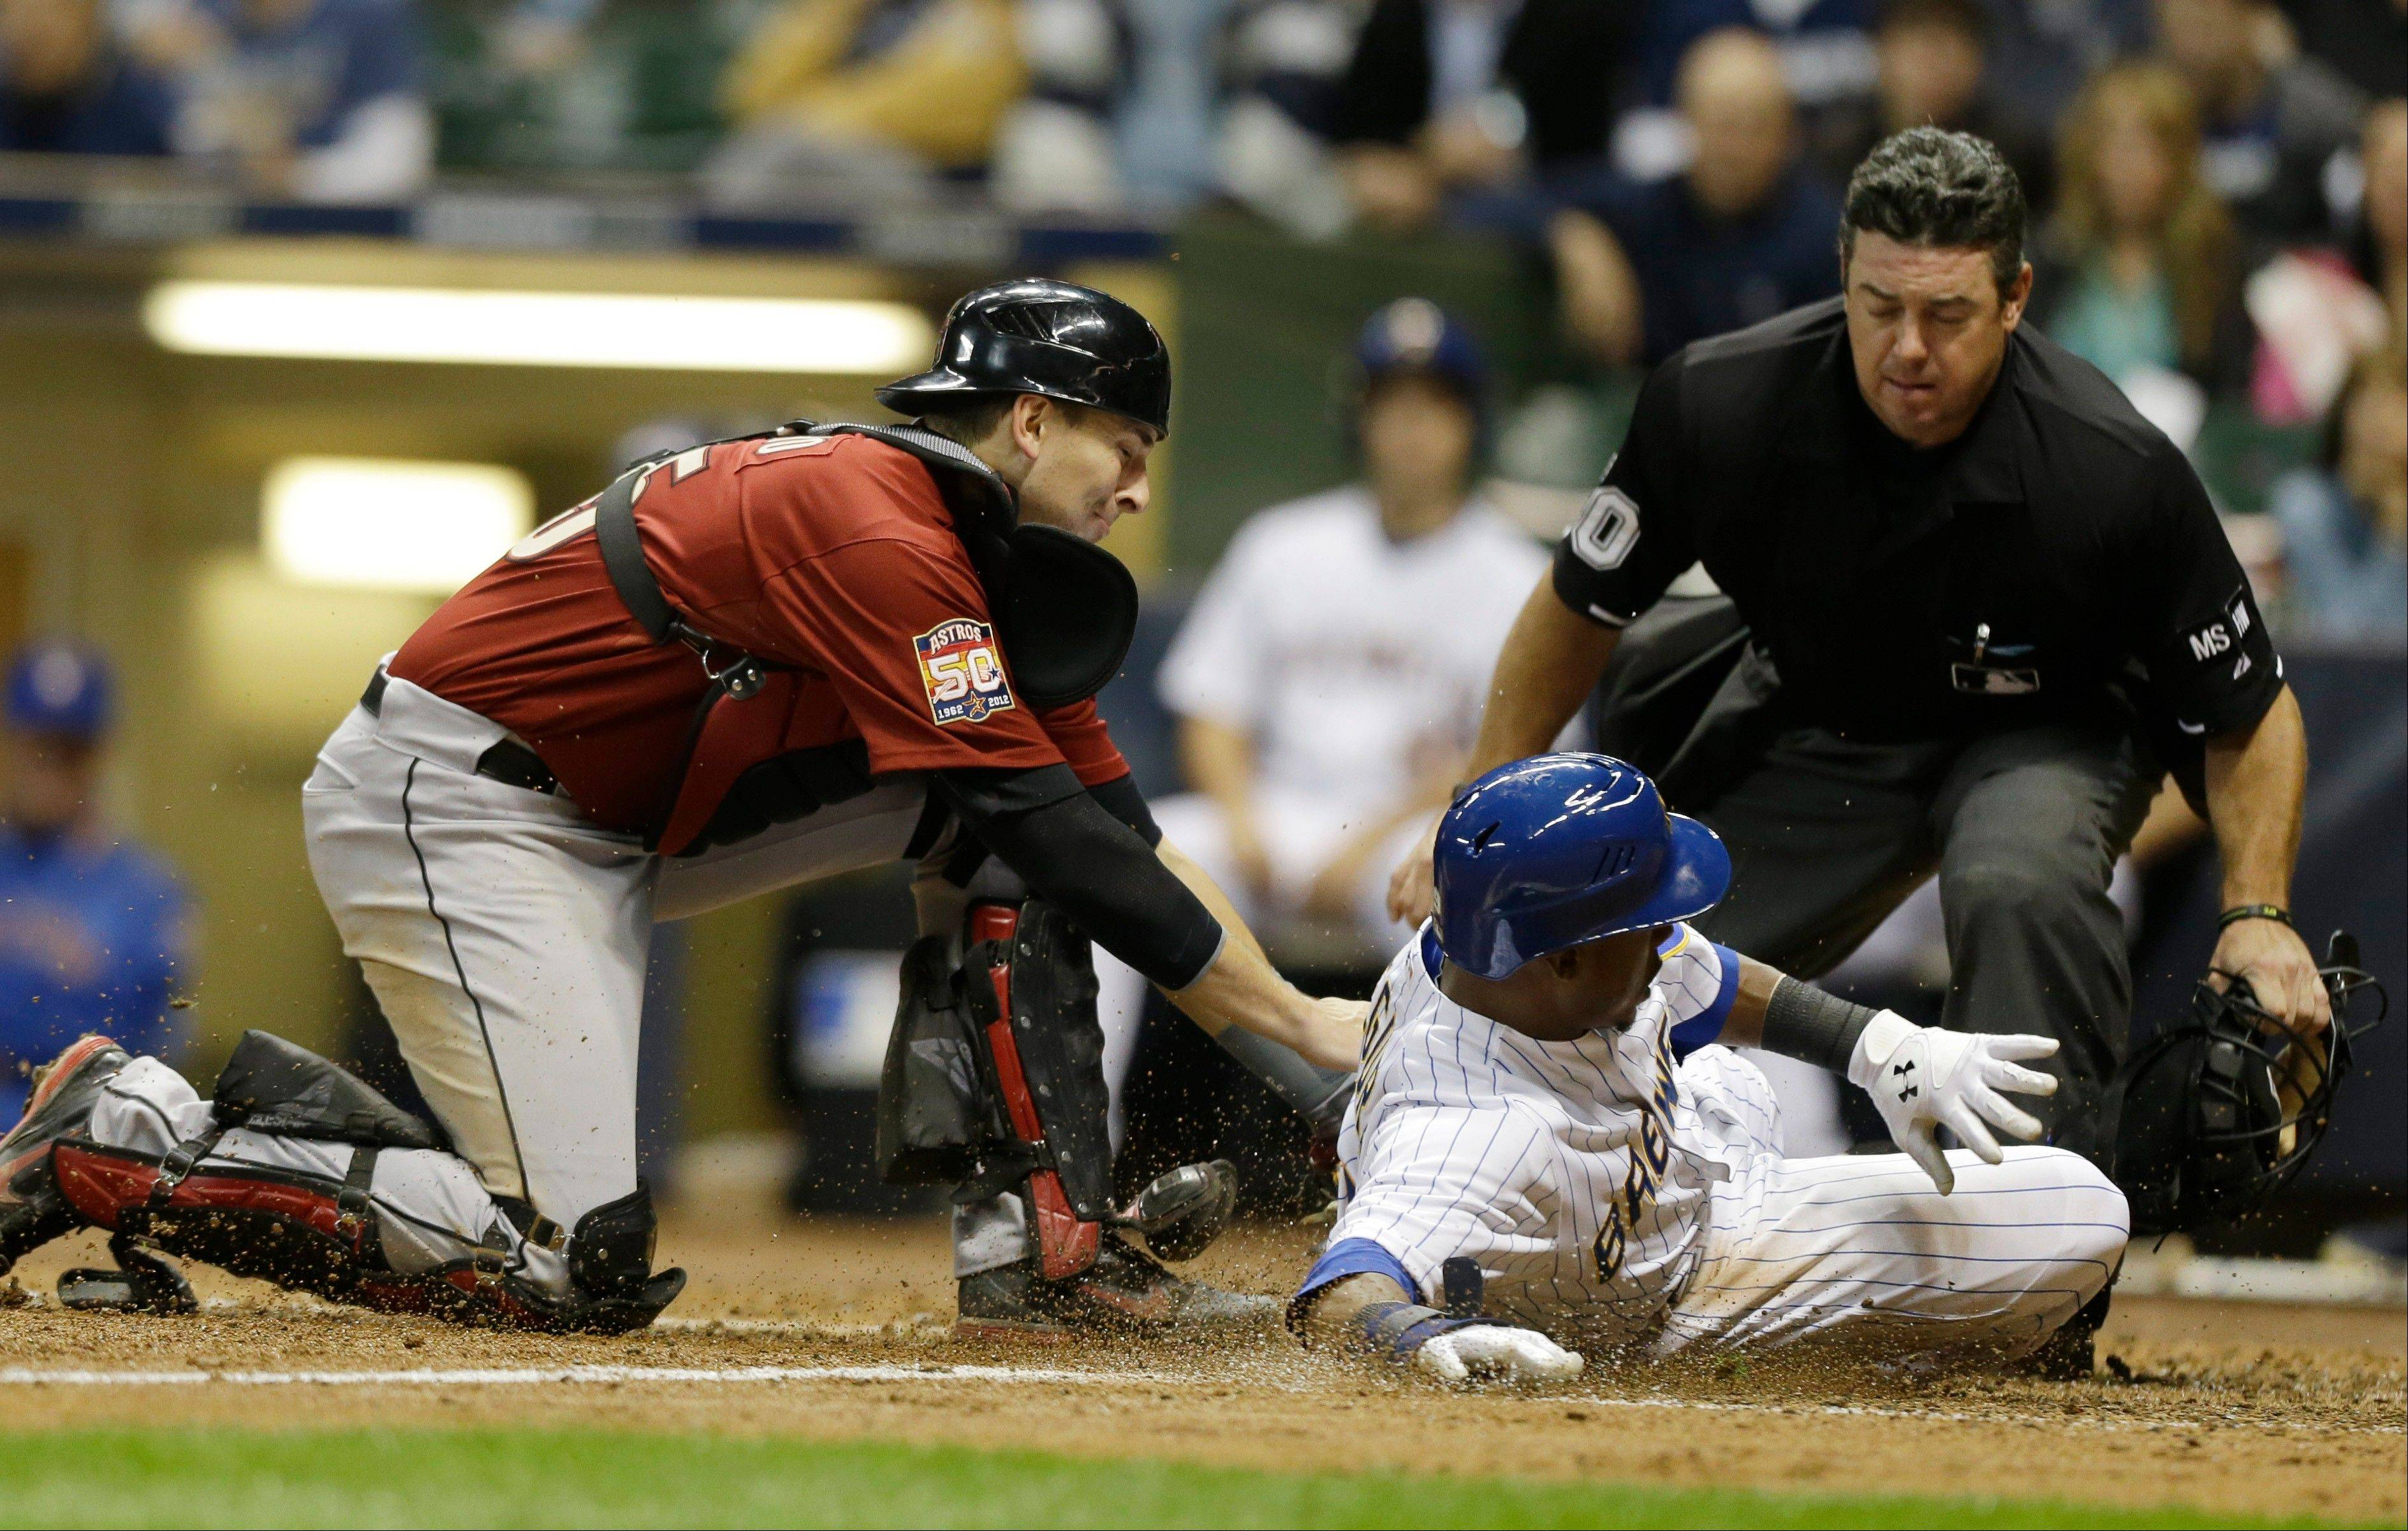 Astros catcher John Castro tags out the Brewers' Jean Segura at home plate Friday in Milwaukee. Looking on to make the call is umpire Rob Drake.